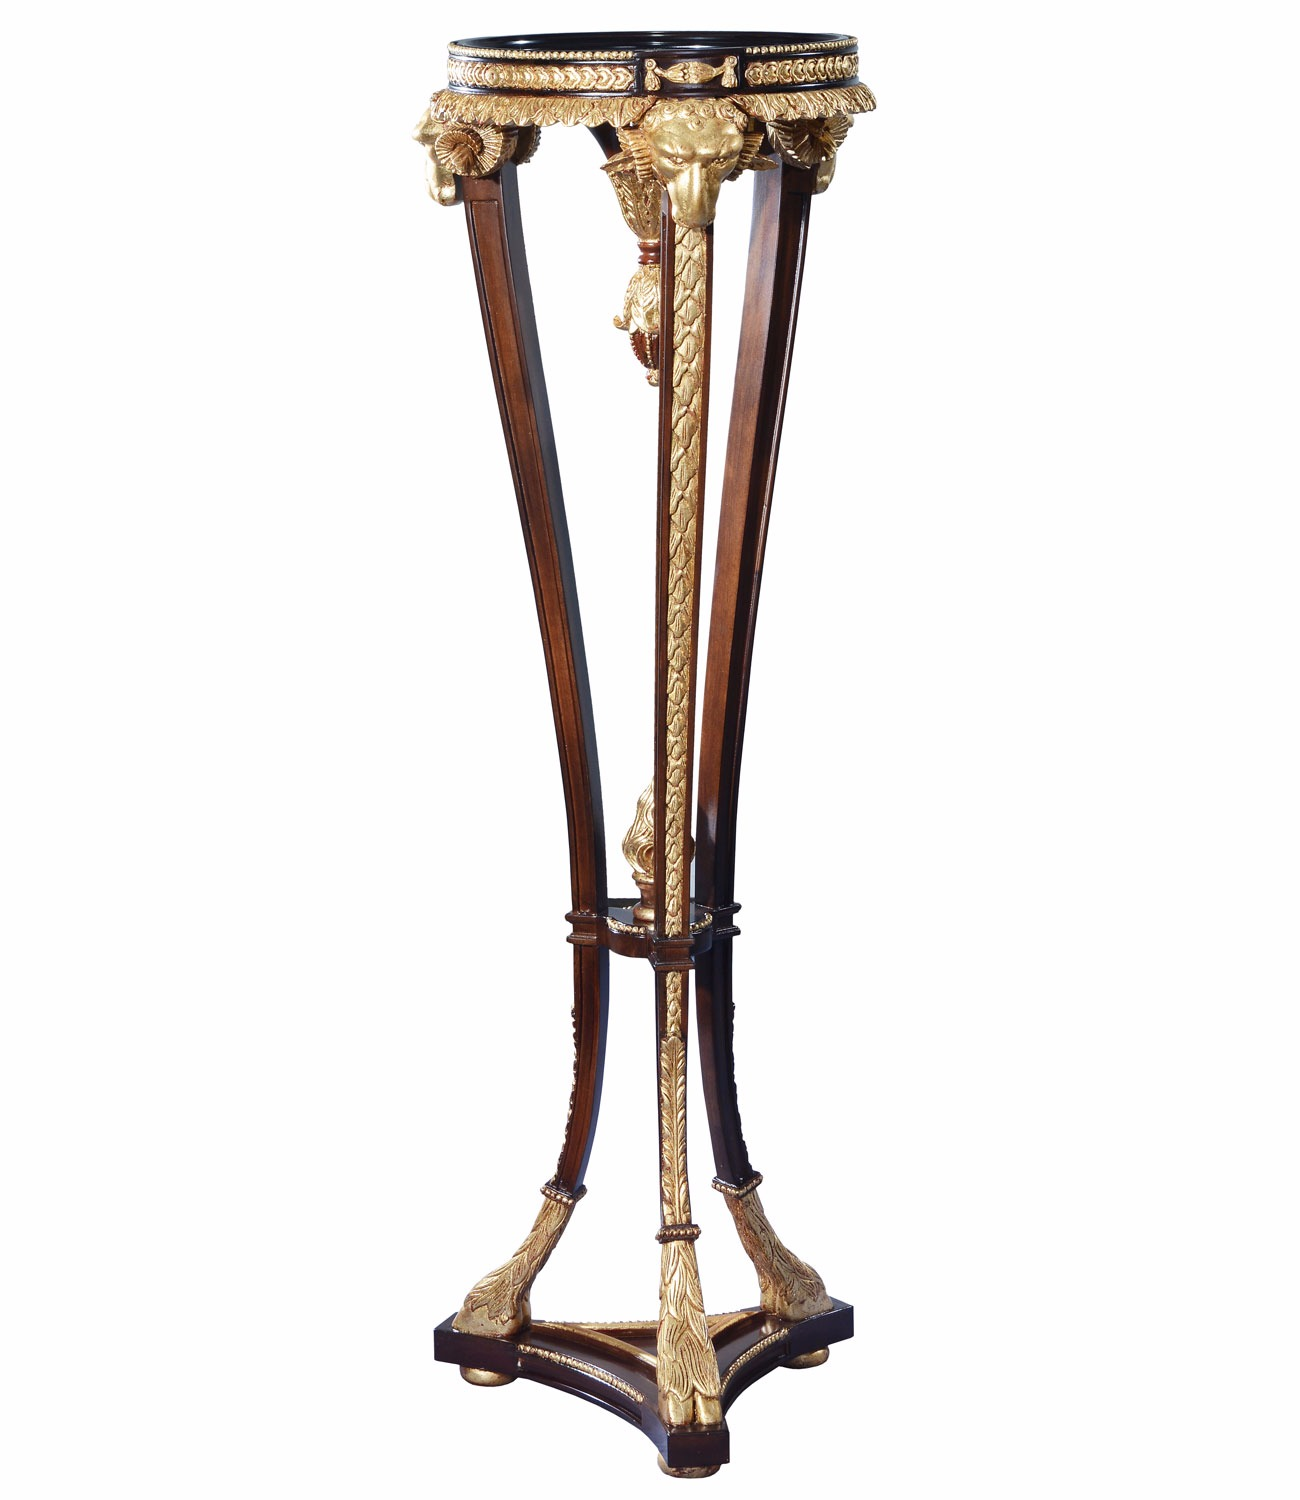 Mahogany and giltwood rams head torchere